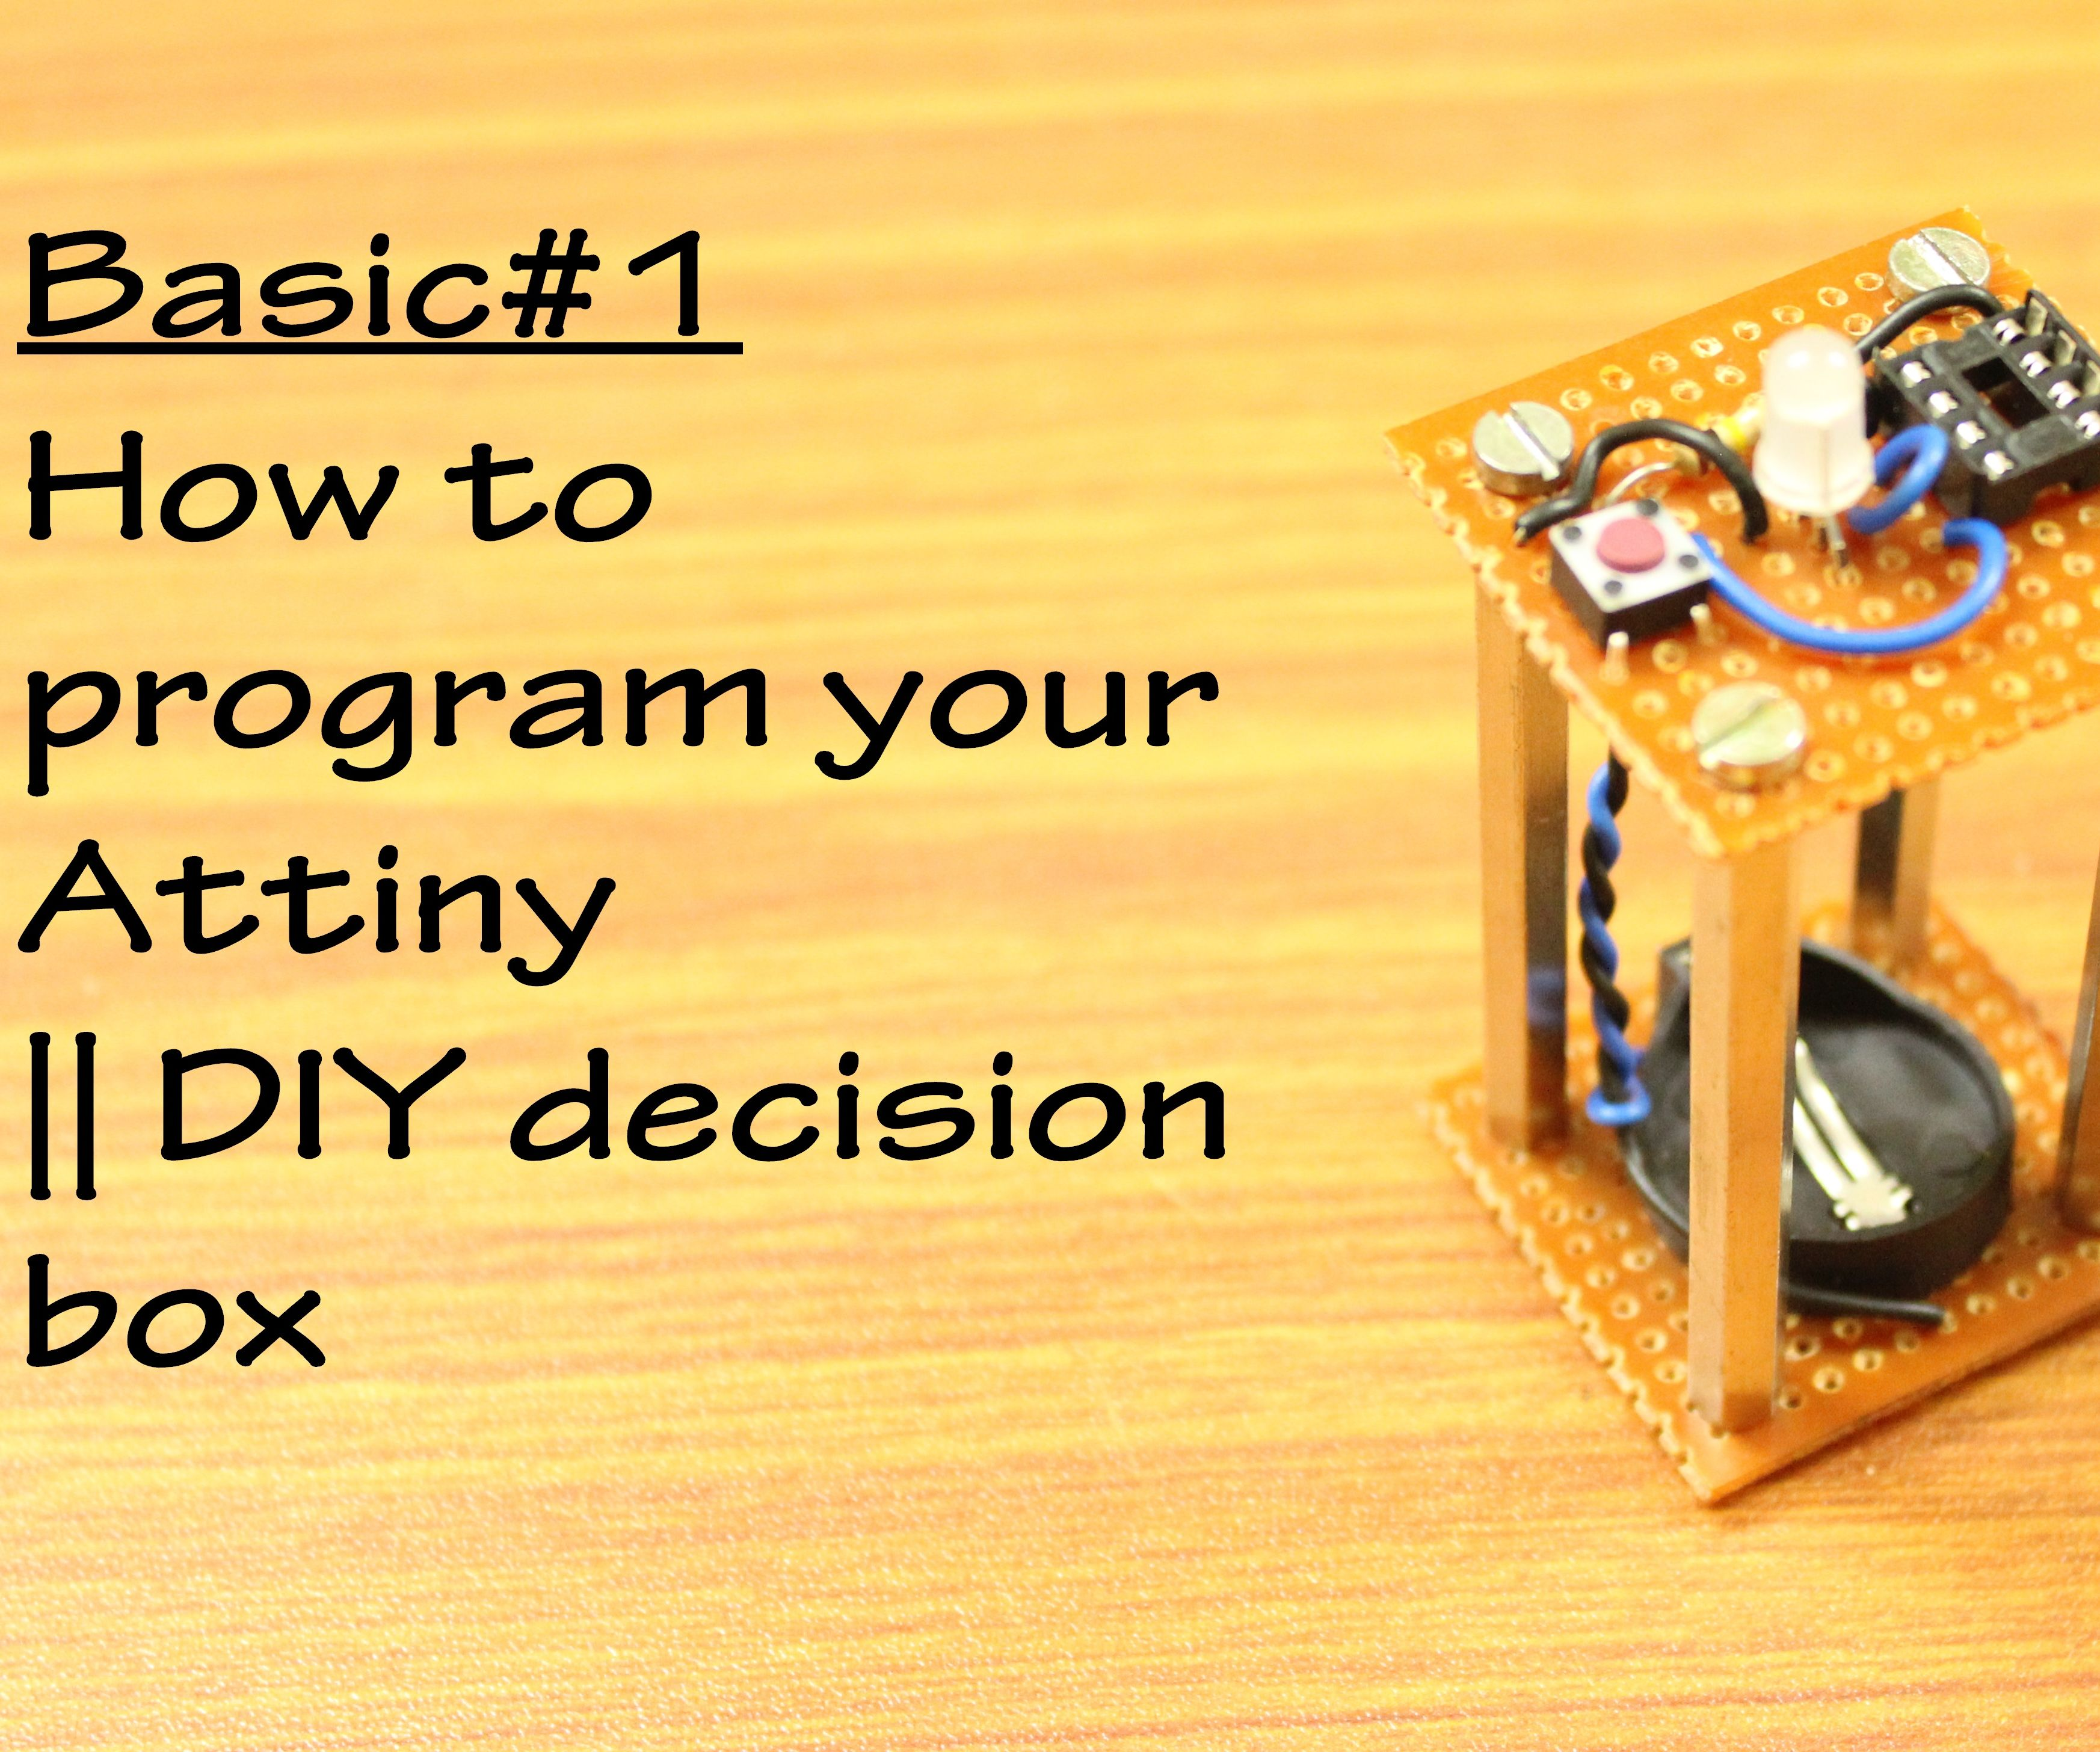 How to program your Attiny || DIY decision box